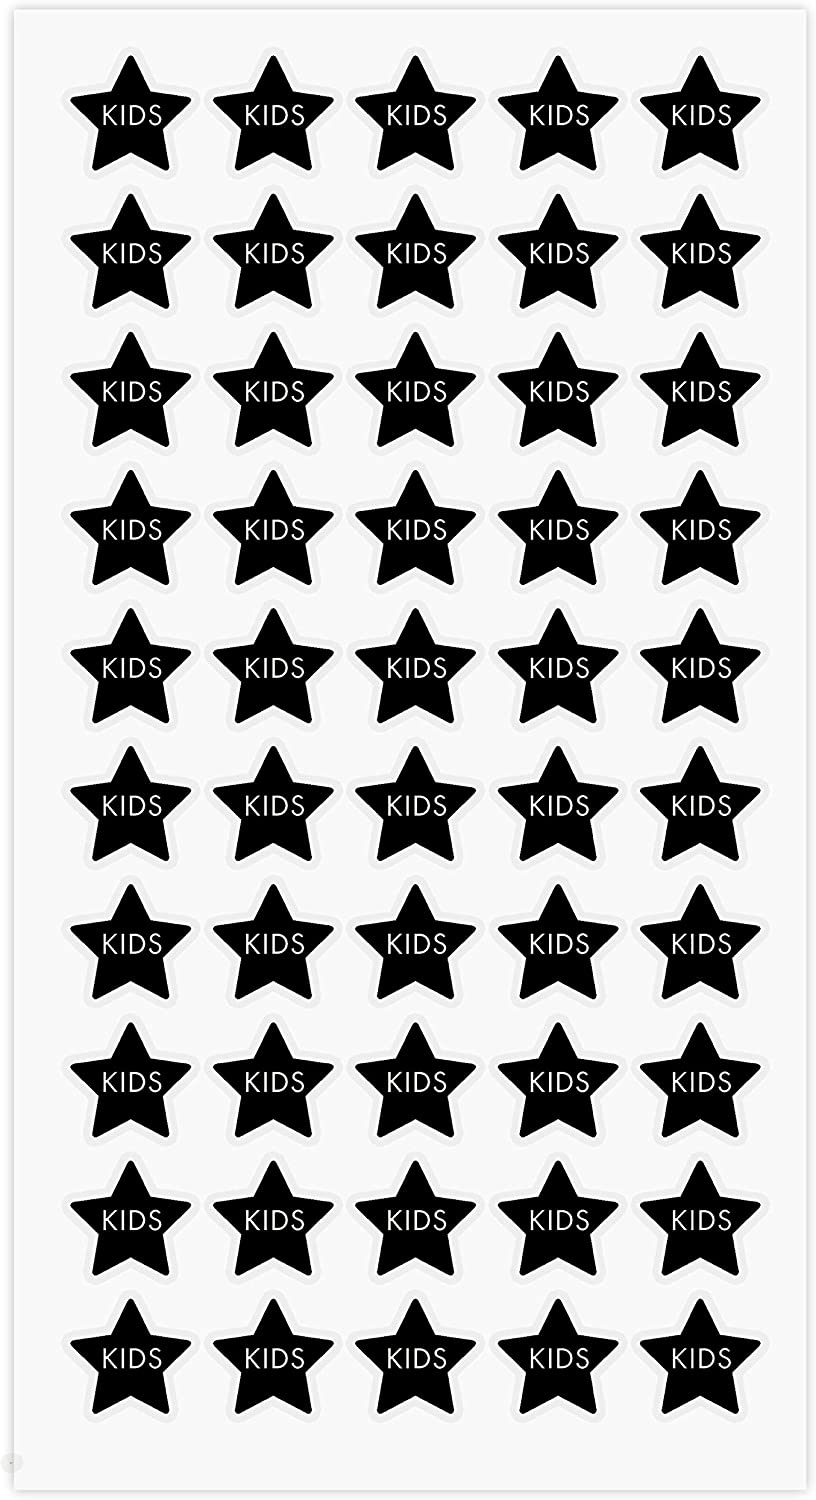 ARK Creation 50 Wedding Meal Stickers for Place Cards - Place Card Menu Choices - Wedding Meal Choice Stickers (Black, Kids Star)